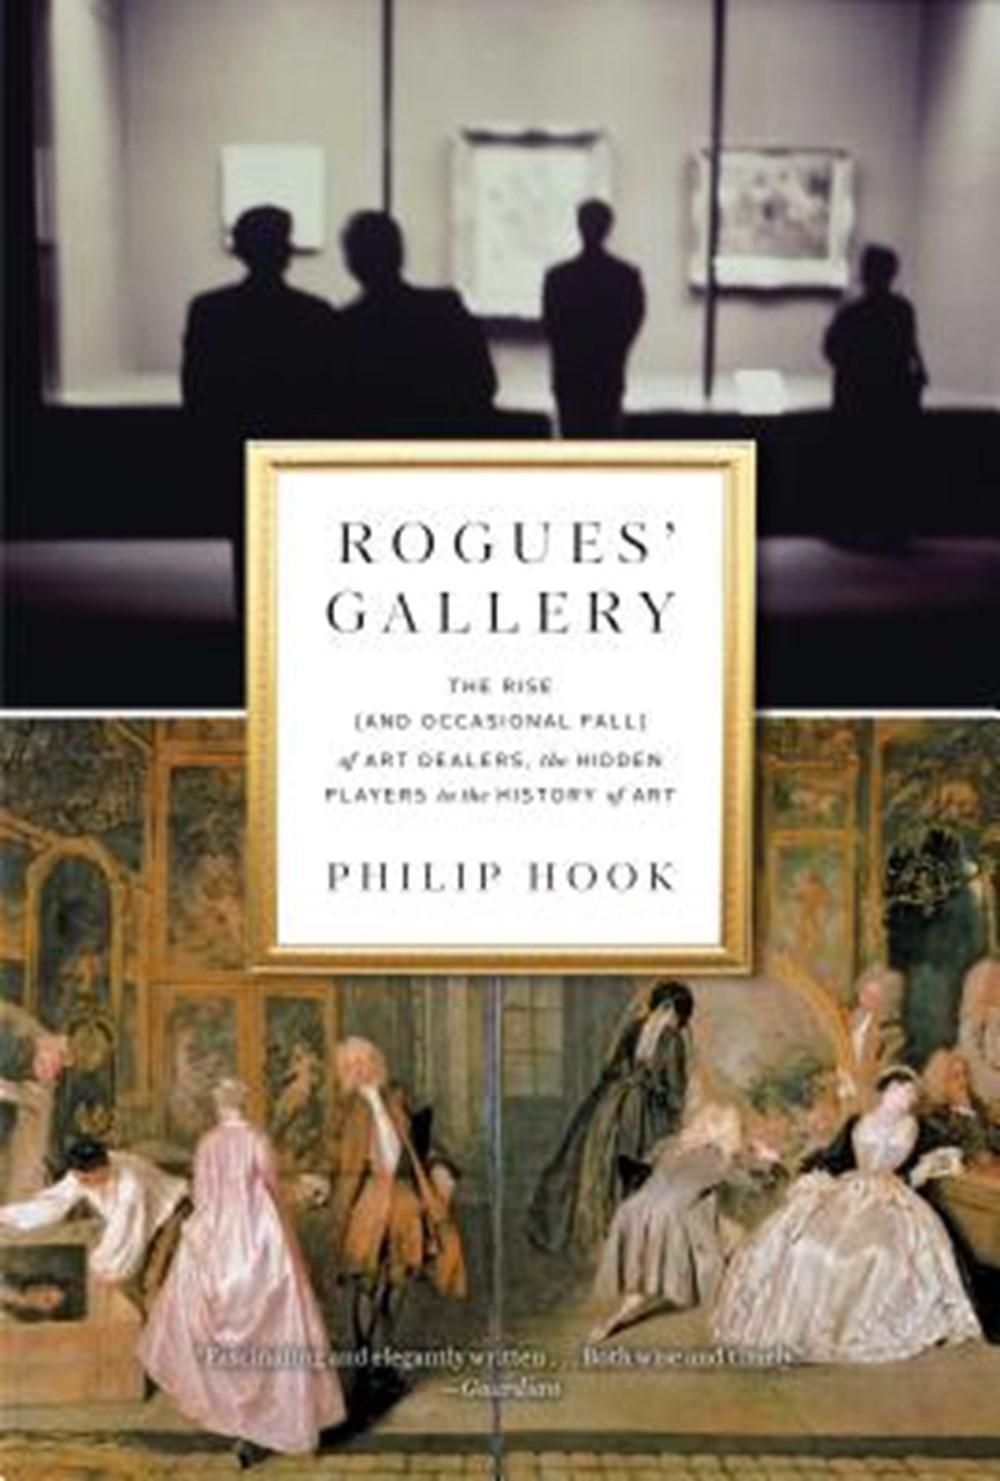 Rogues' Gallery The Rise (and Occasional Fall) of Art Dealers, the Hidden Players in the History of